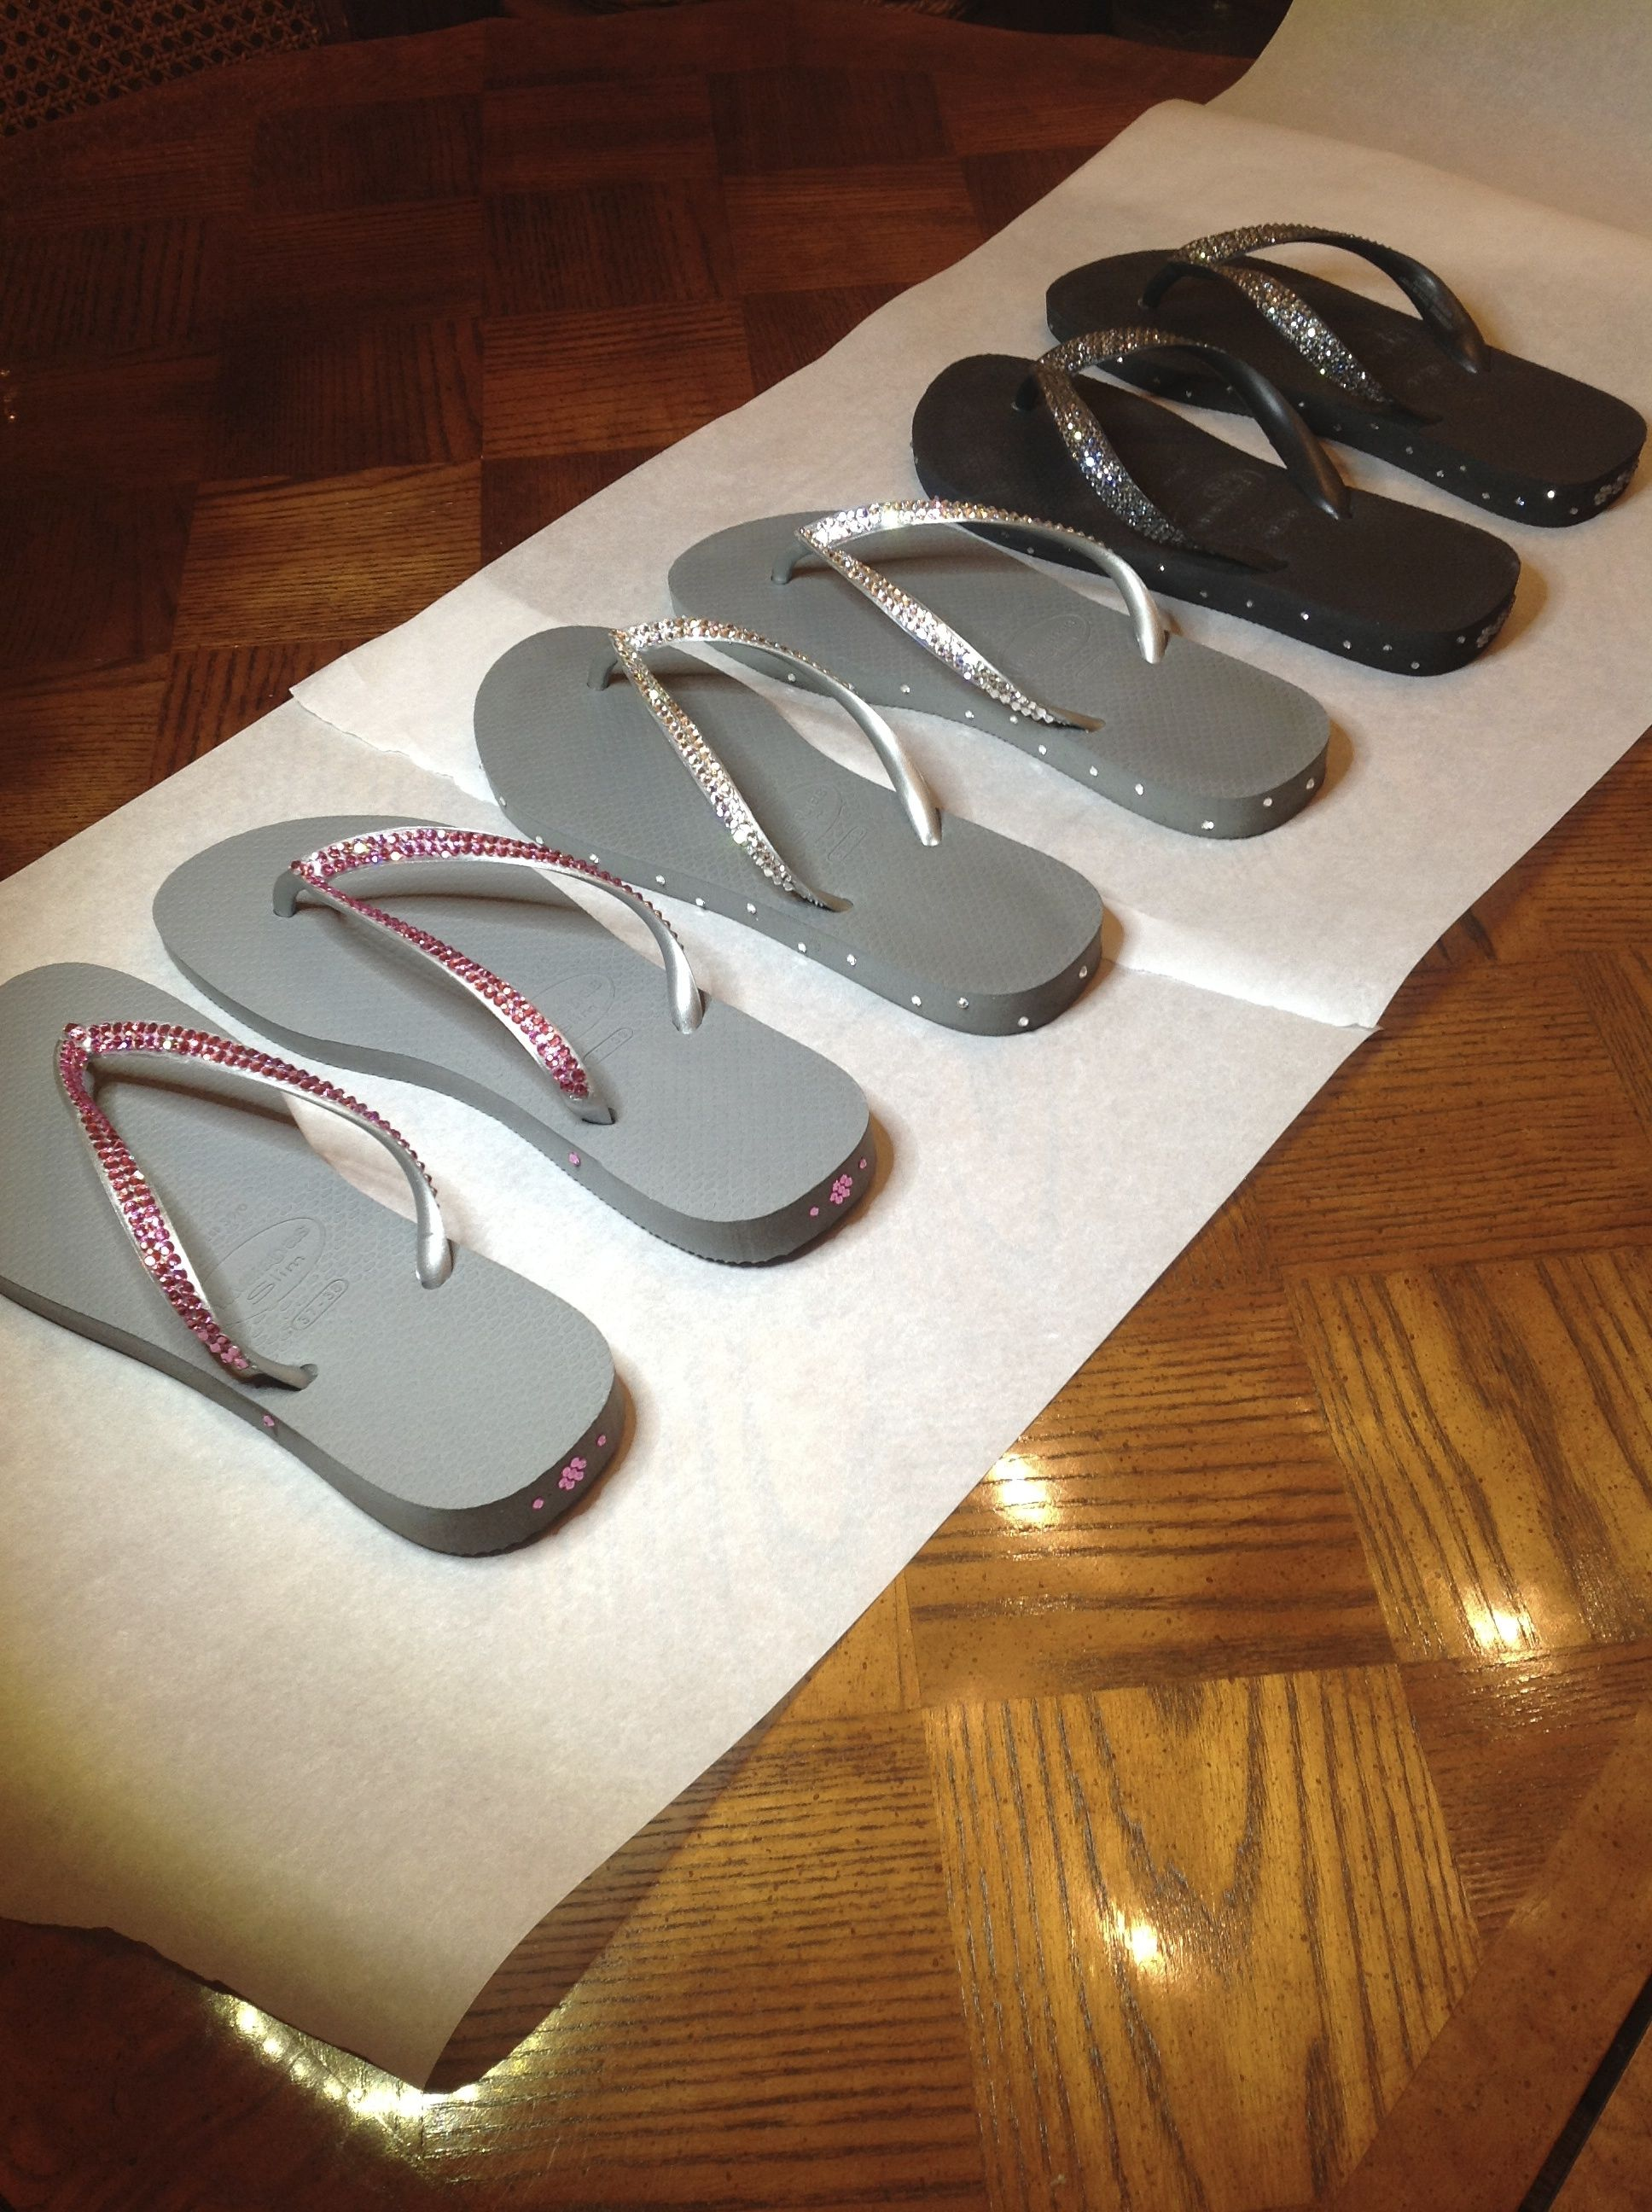 69b327d4d49c0 Swarovski Havaianas designed for your various outfits. 1) SLIM Grey Silver  with Rose